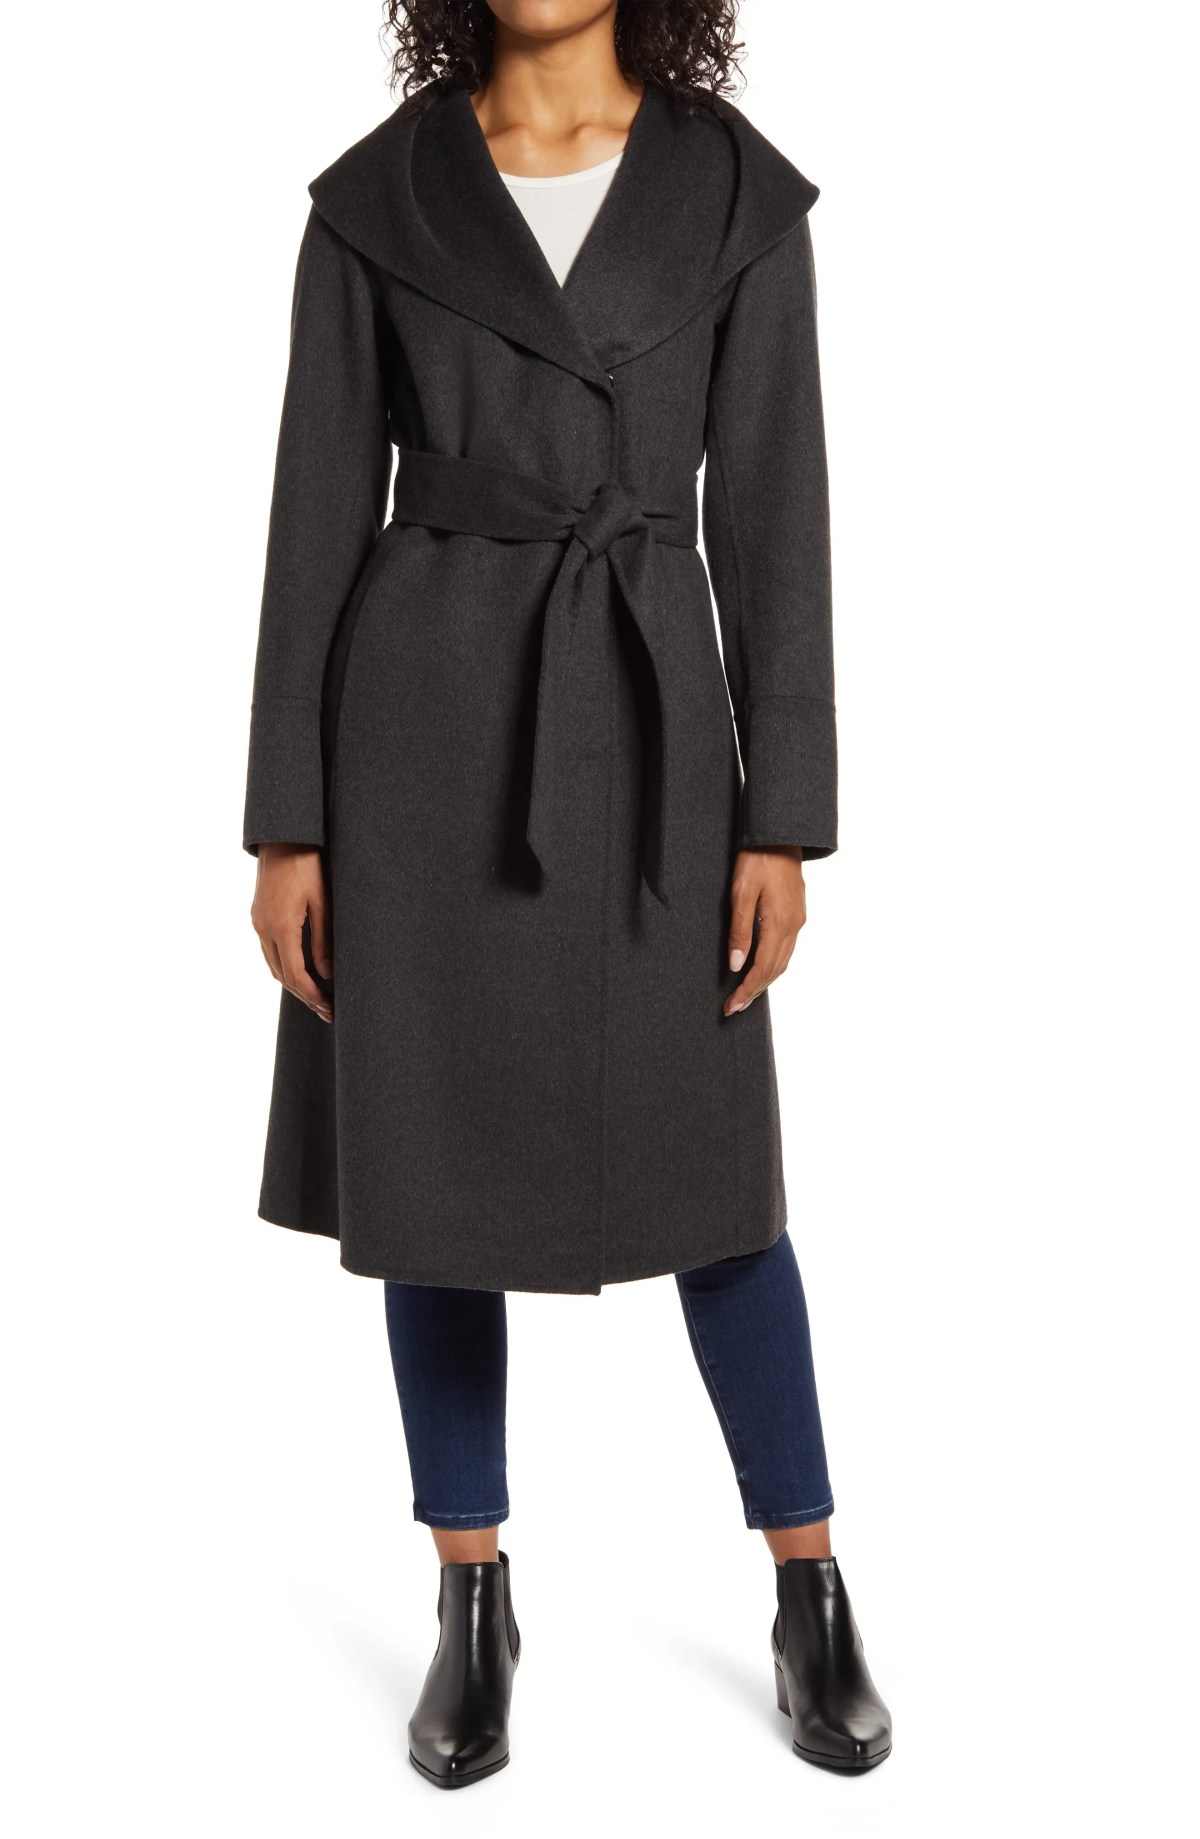 KENNETH COLE NEW YORK Shawl Collar Wool Blend Wrap Coat, Main, color, CHARCOAL